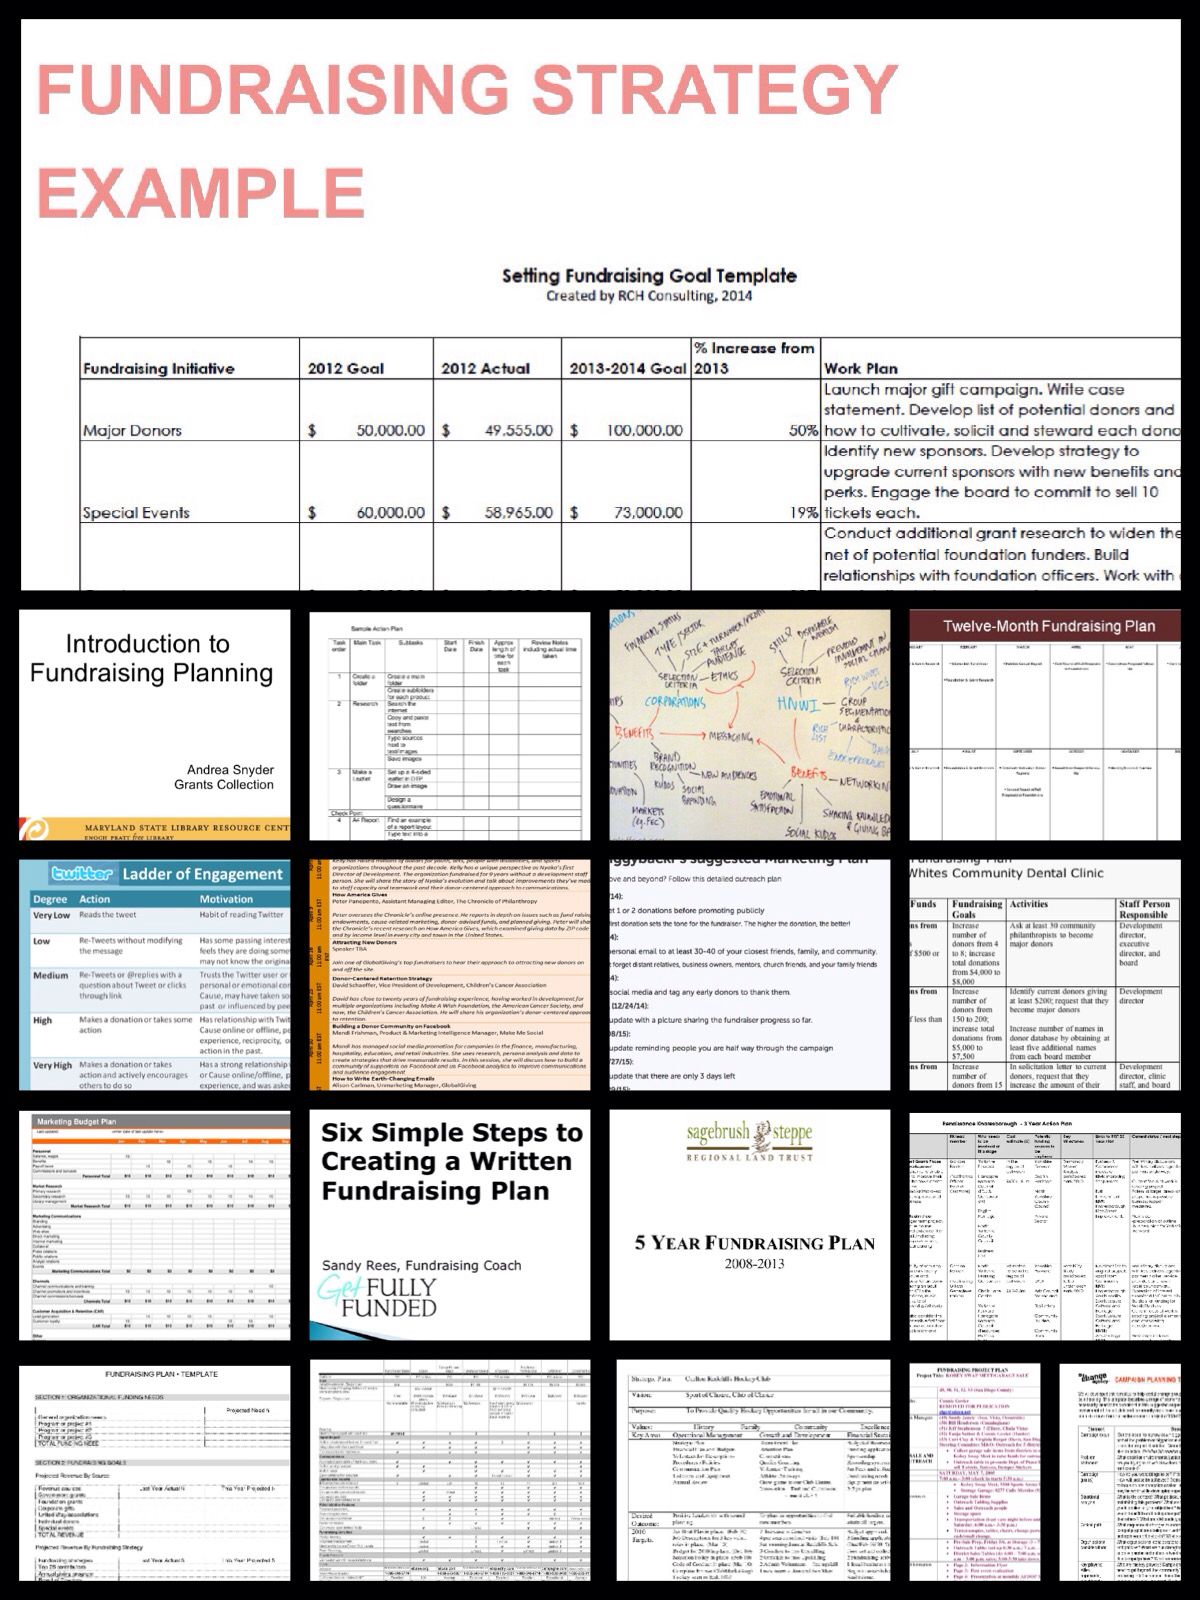 Fundraising Strategy Templates Fundraising Strategies How To Plan Business Plan Template Pdf Non profit development plan template